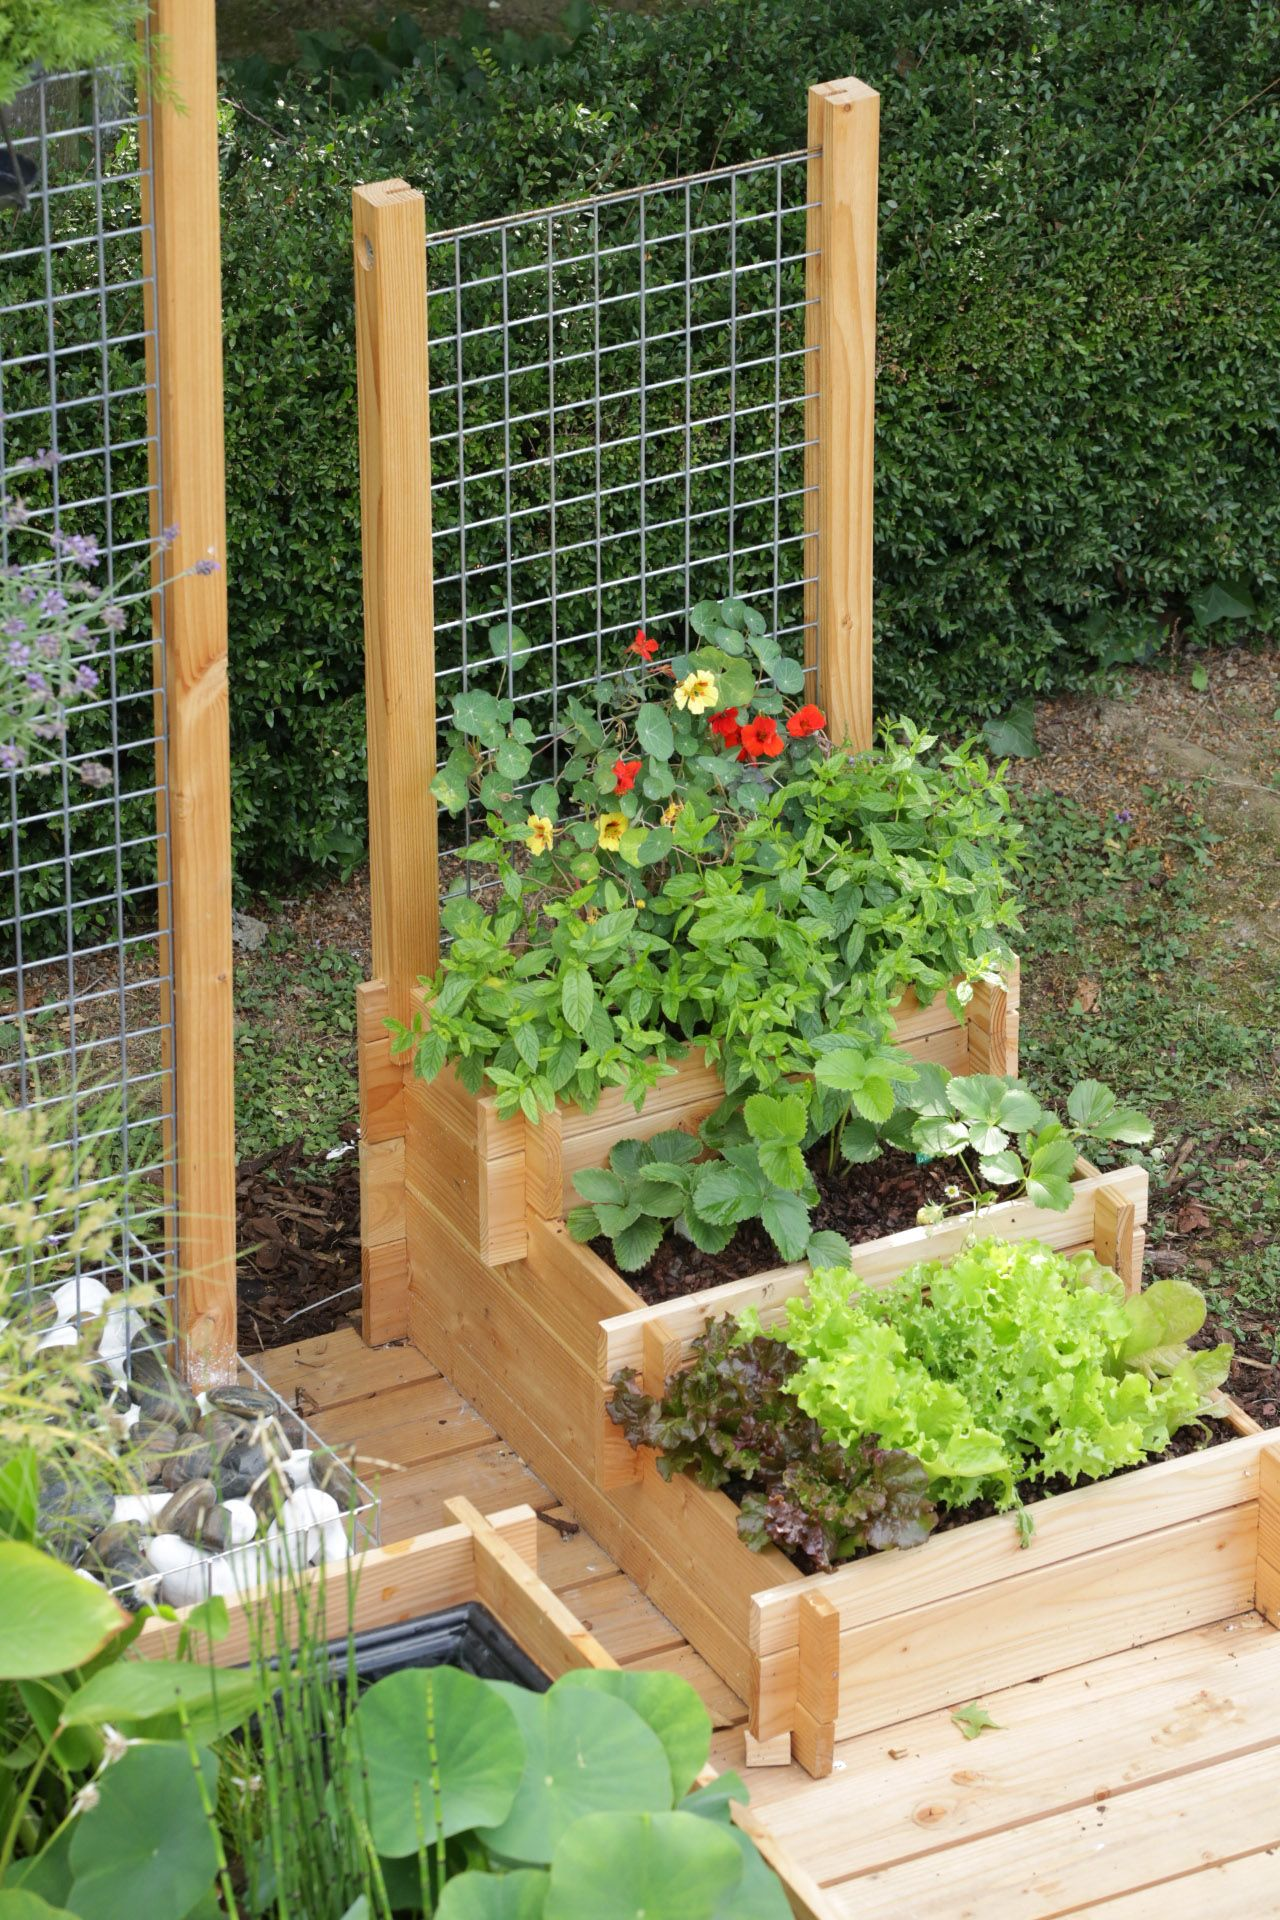 Le potager gourmand botanic jardin terrasse garage for Amenagement potager idees